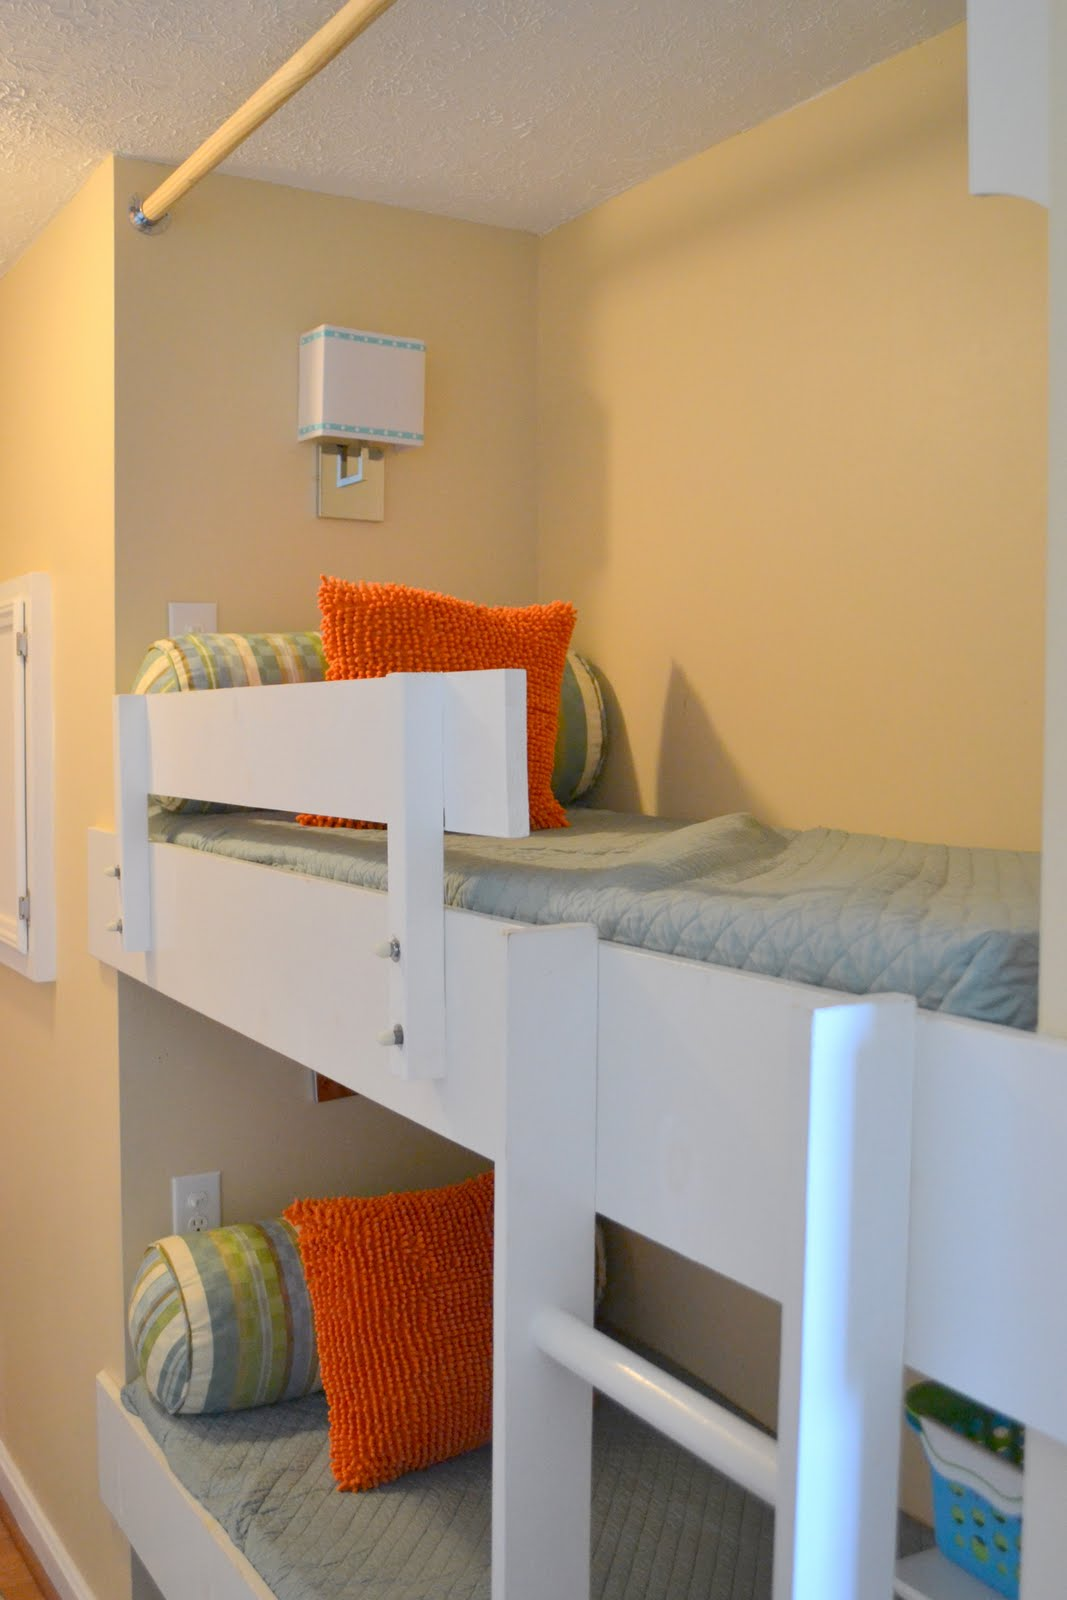 The Amazing Before And Afters Of Our Renovated Beach Condo Part